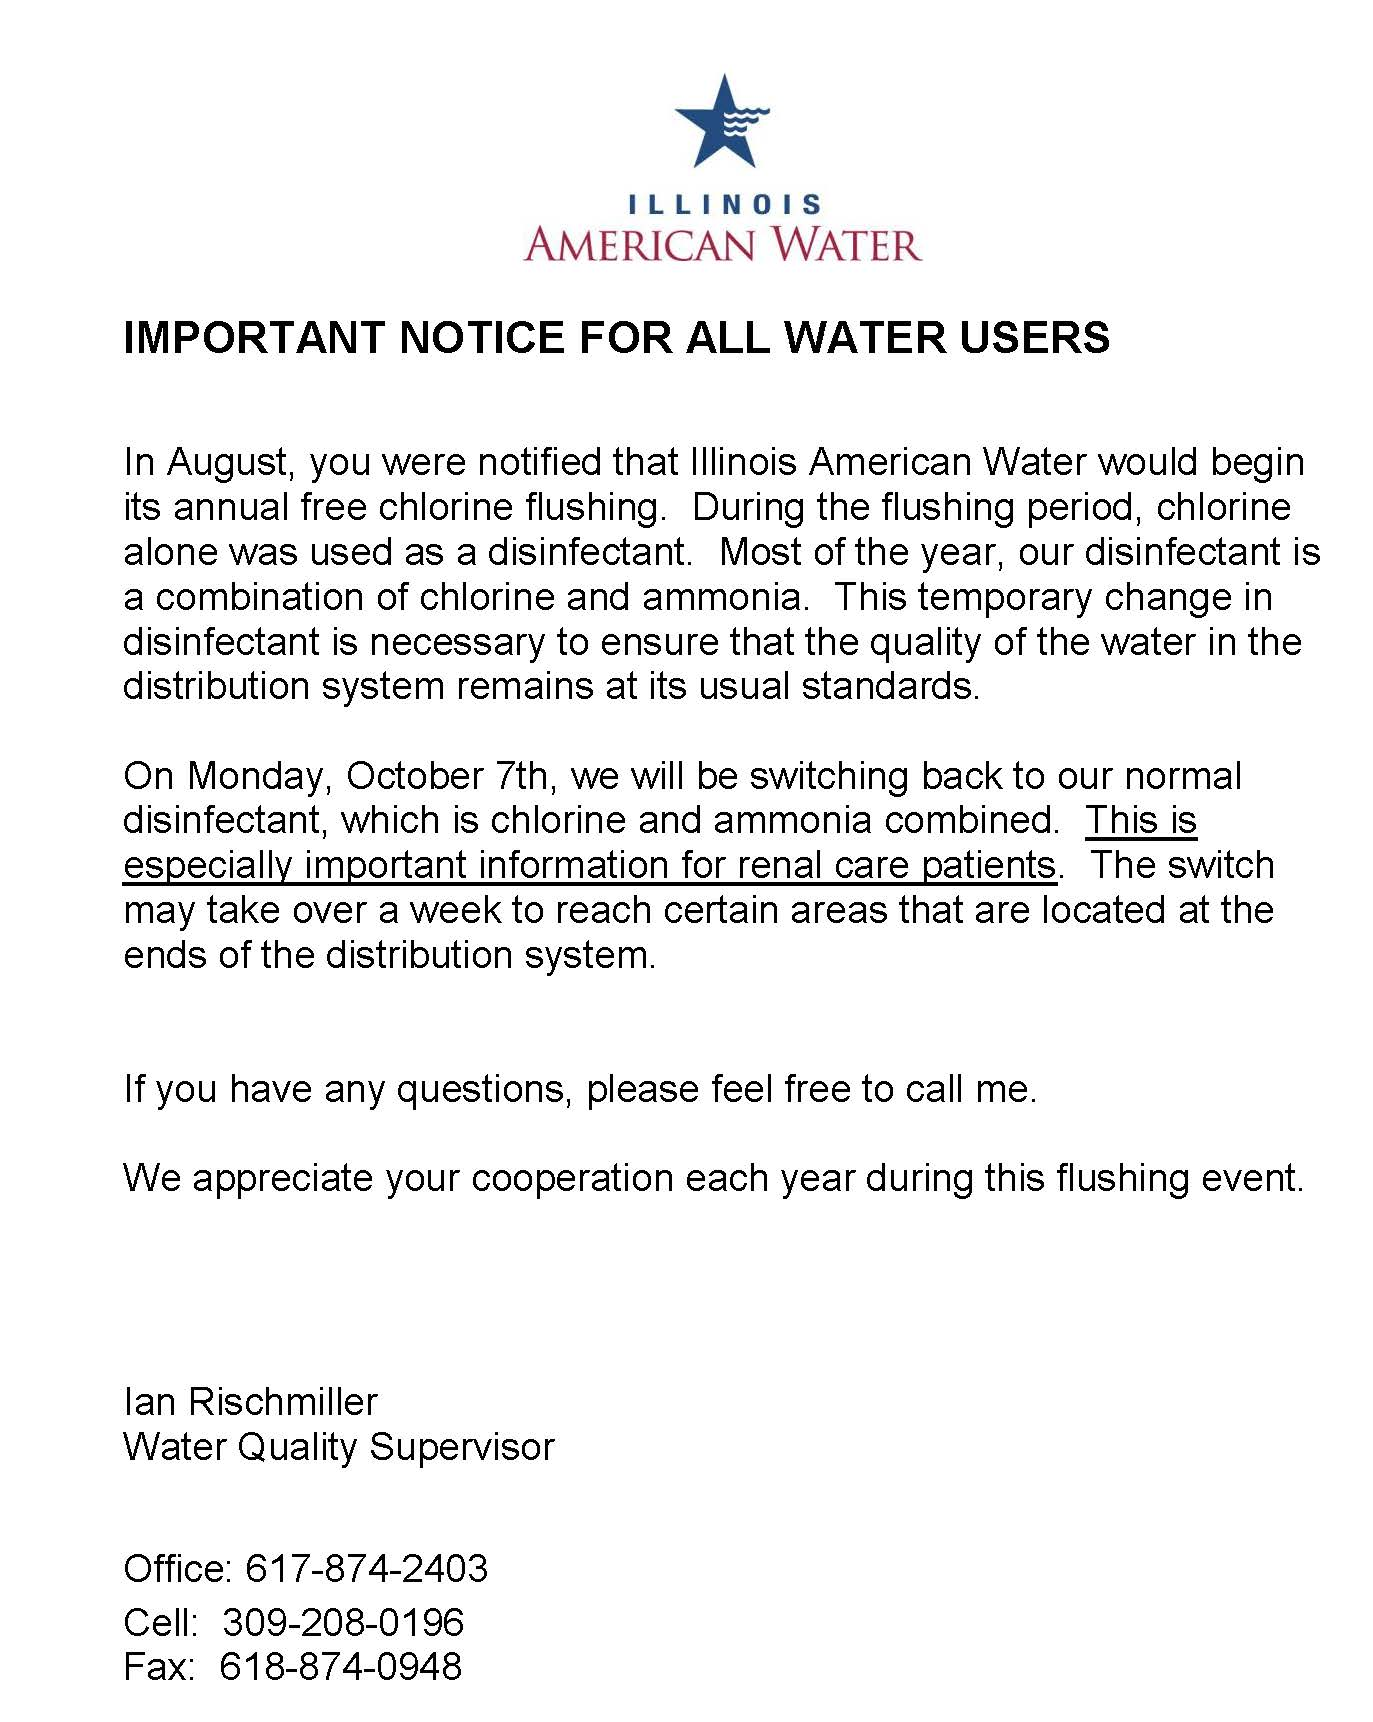 Interurban Treatment Change And Flushing Release 10 2019.word